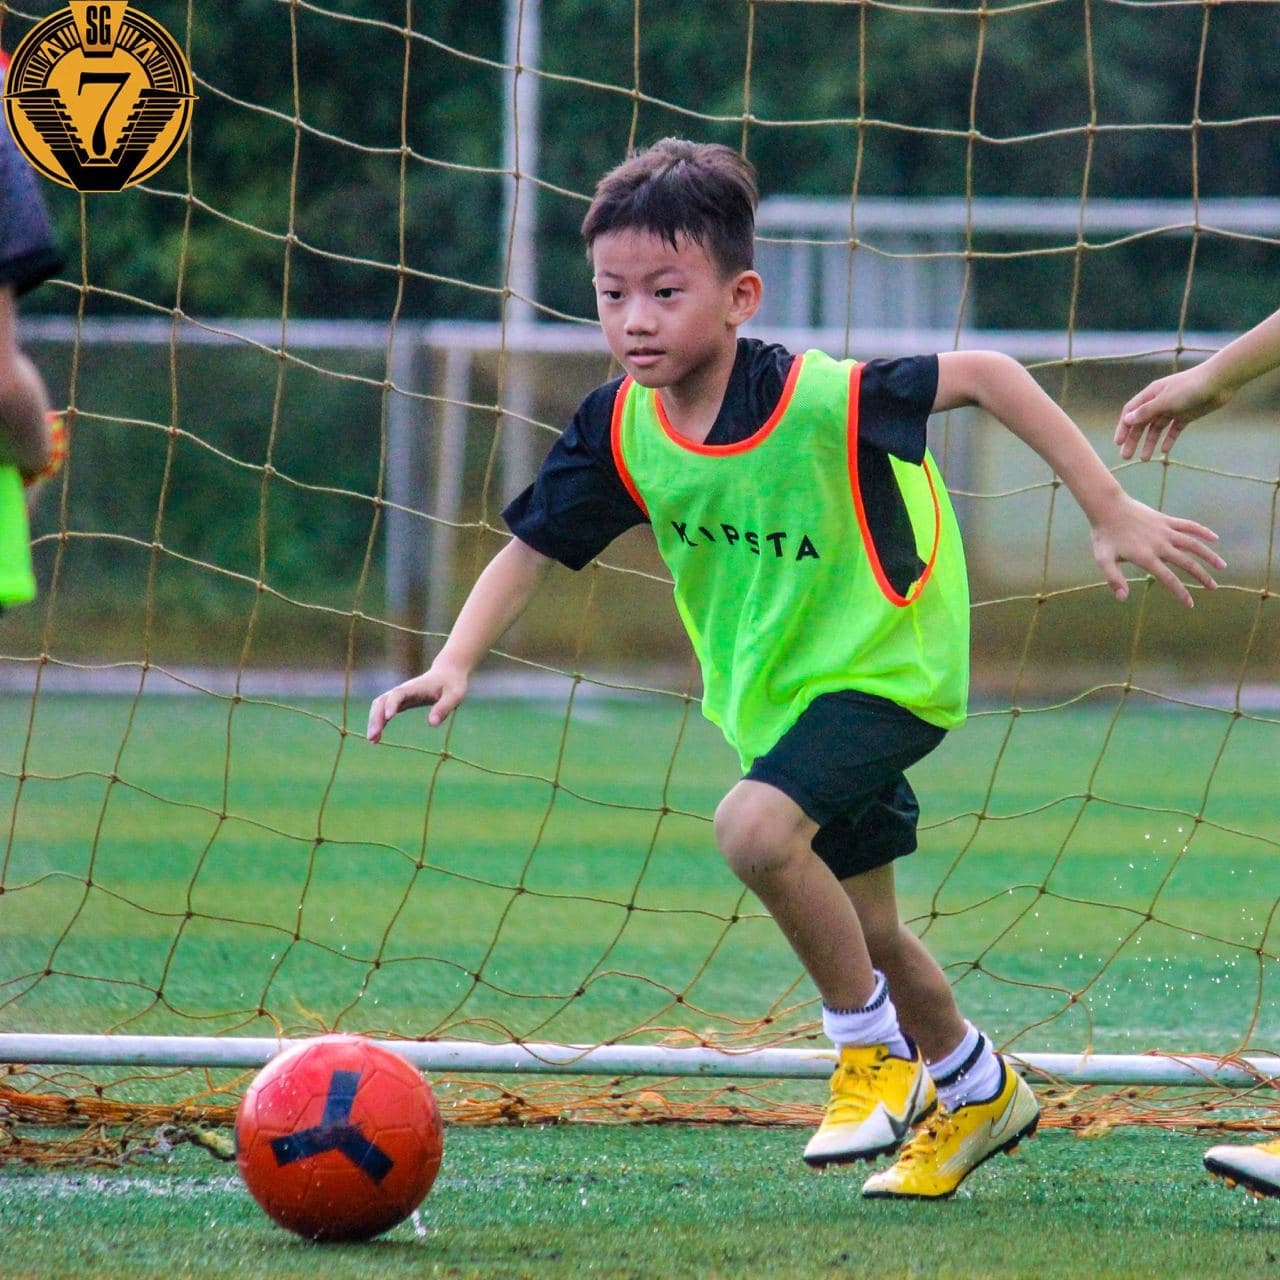 Players Under 7 Years Old